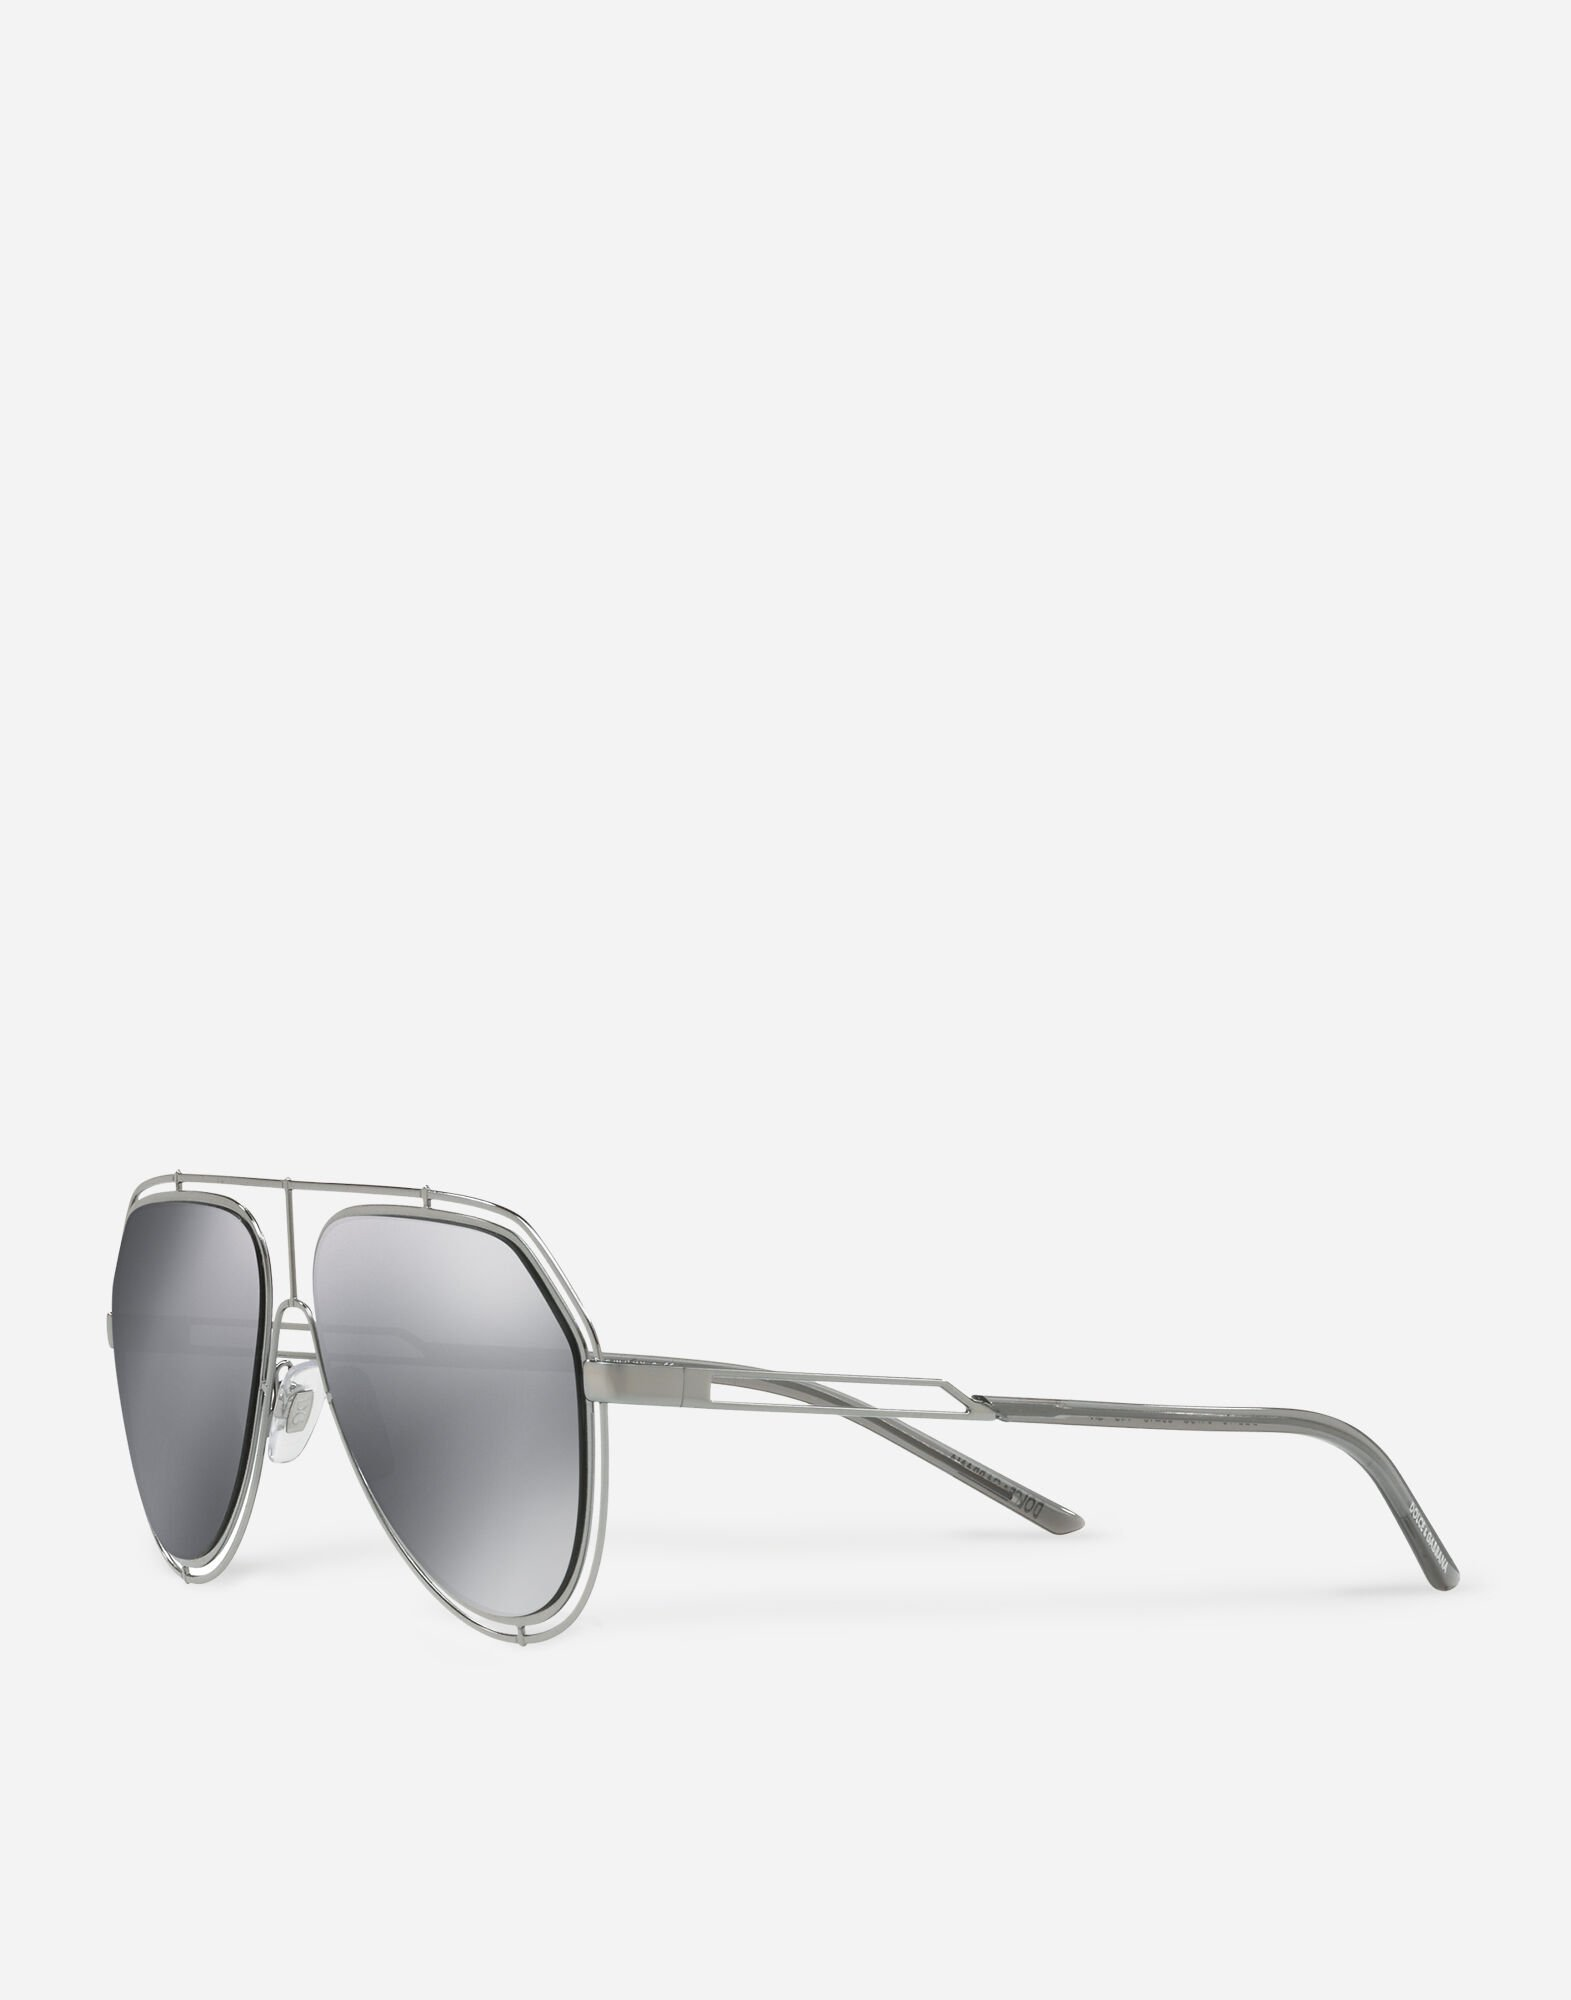 AVIATOR SUNGLASSES WITH METAL RIMS